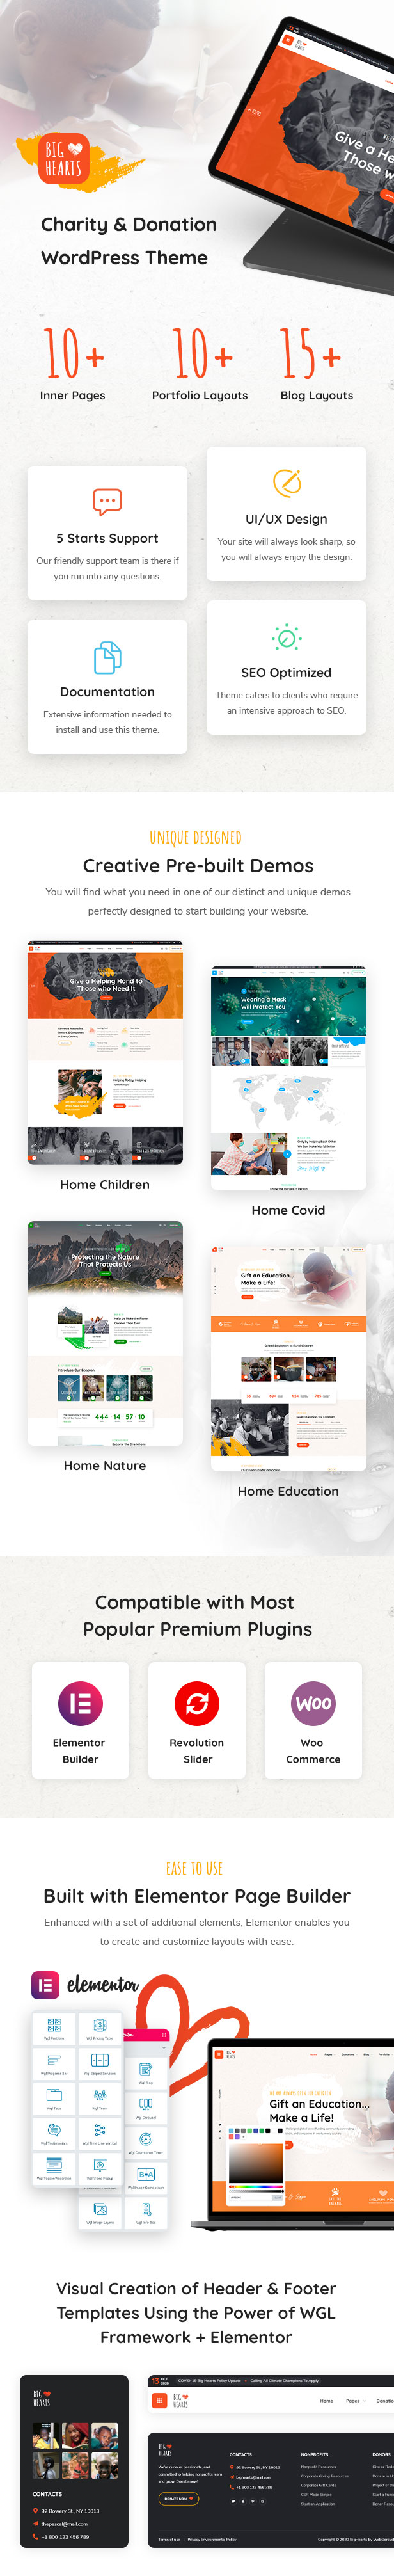 BigHearts - Charity & Donation WordPress Theme - 1